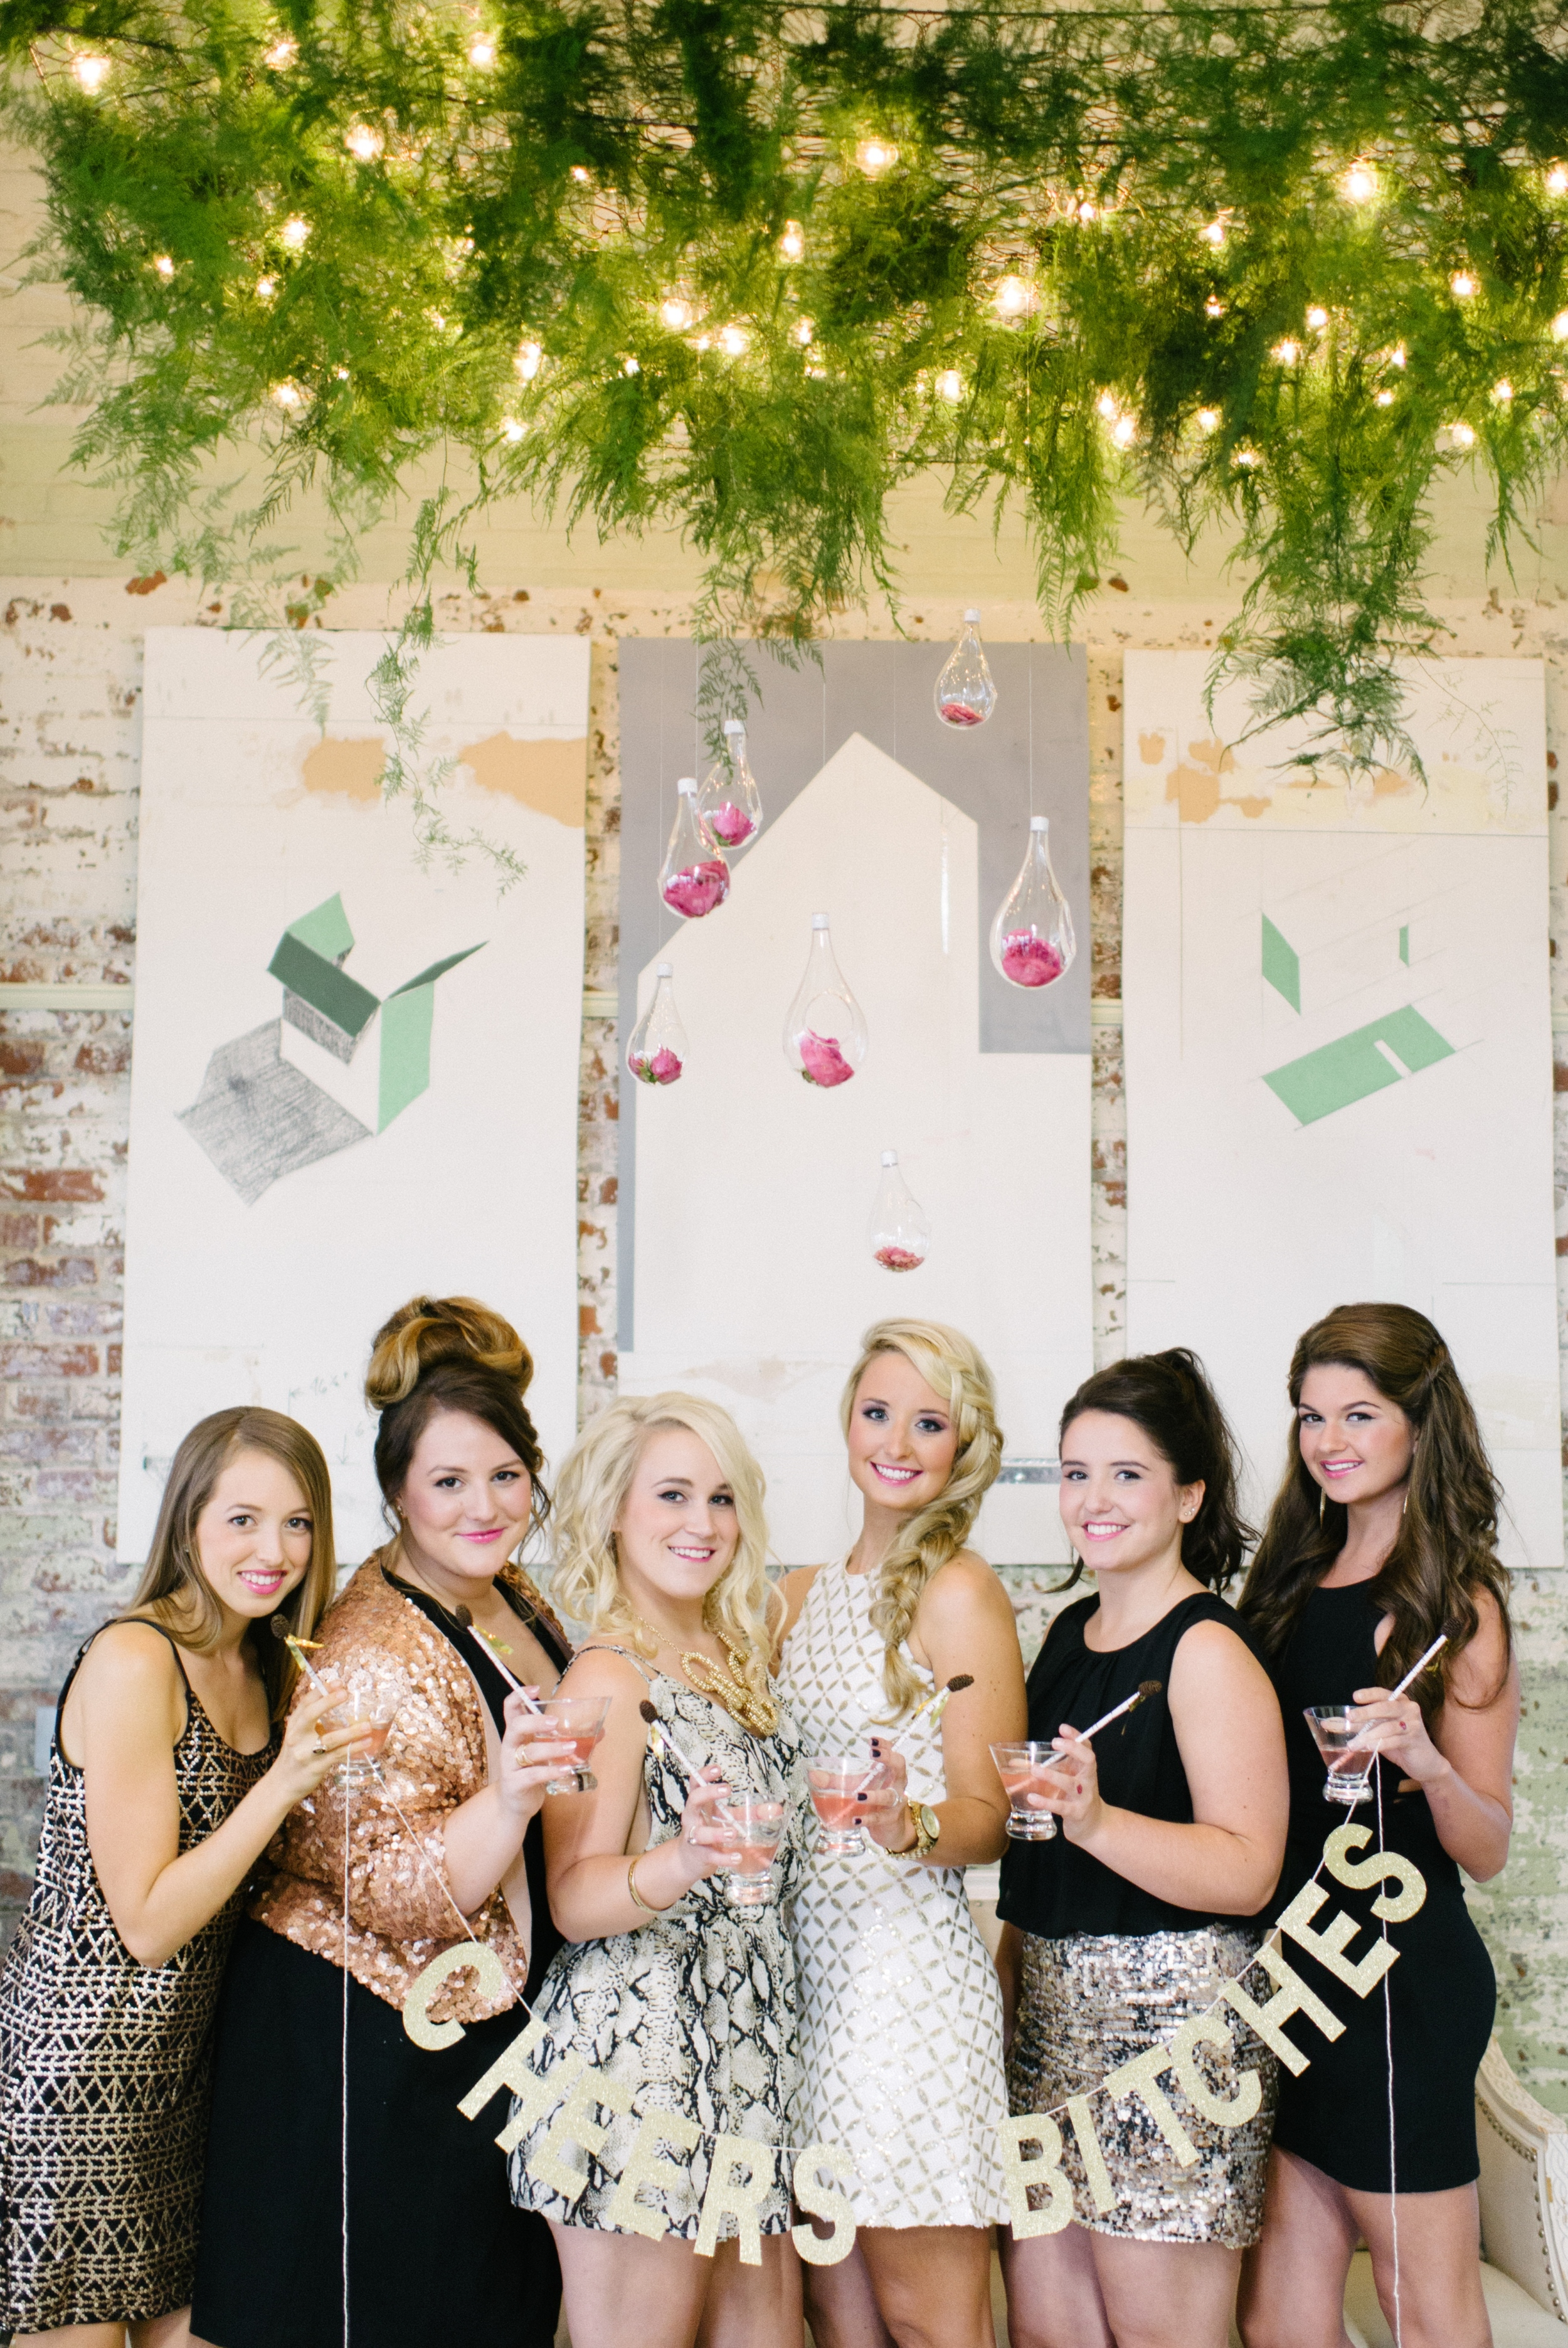 Modern Magnolias at Hilton Head Bachelorette Party